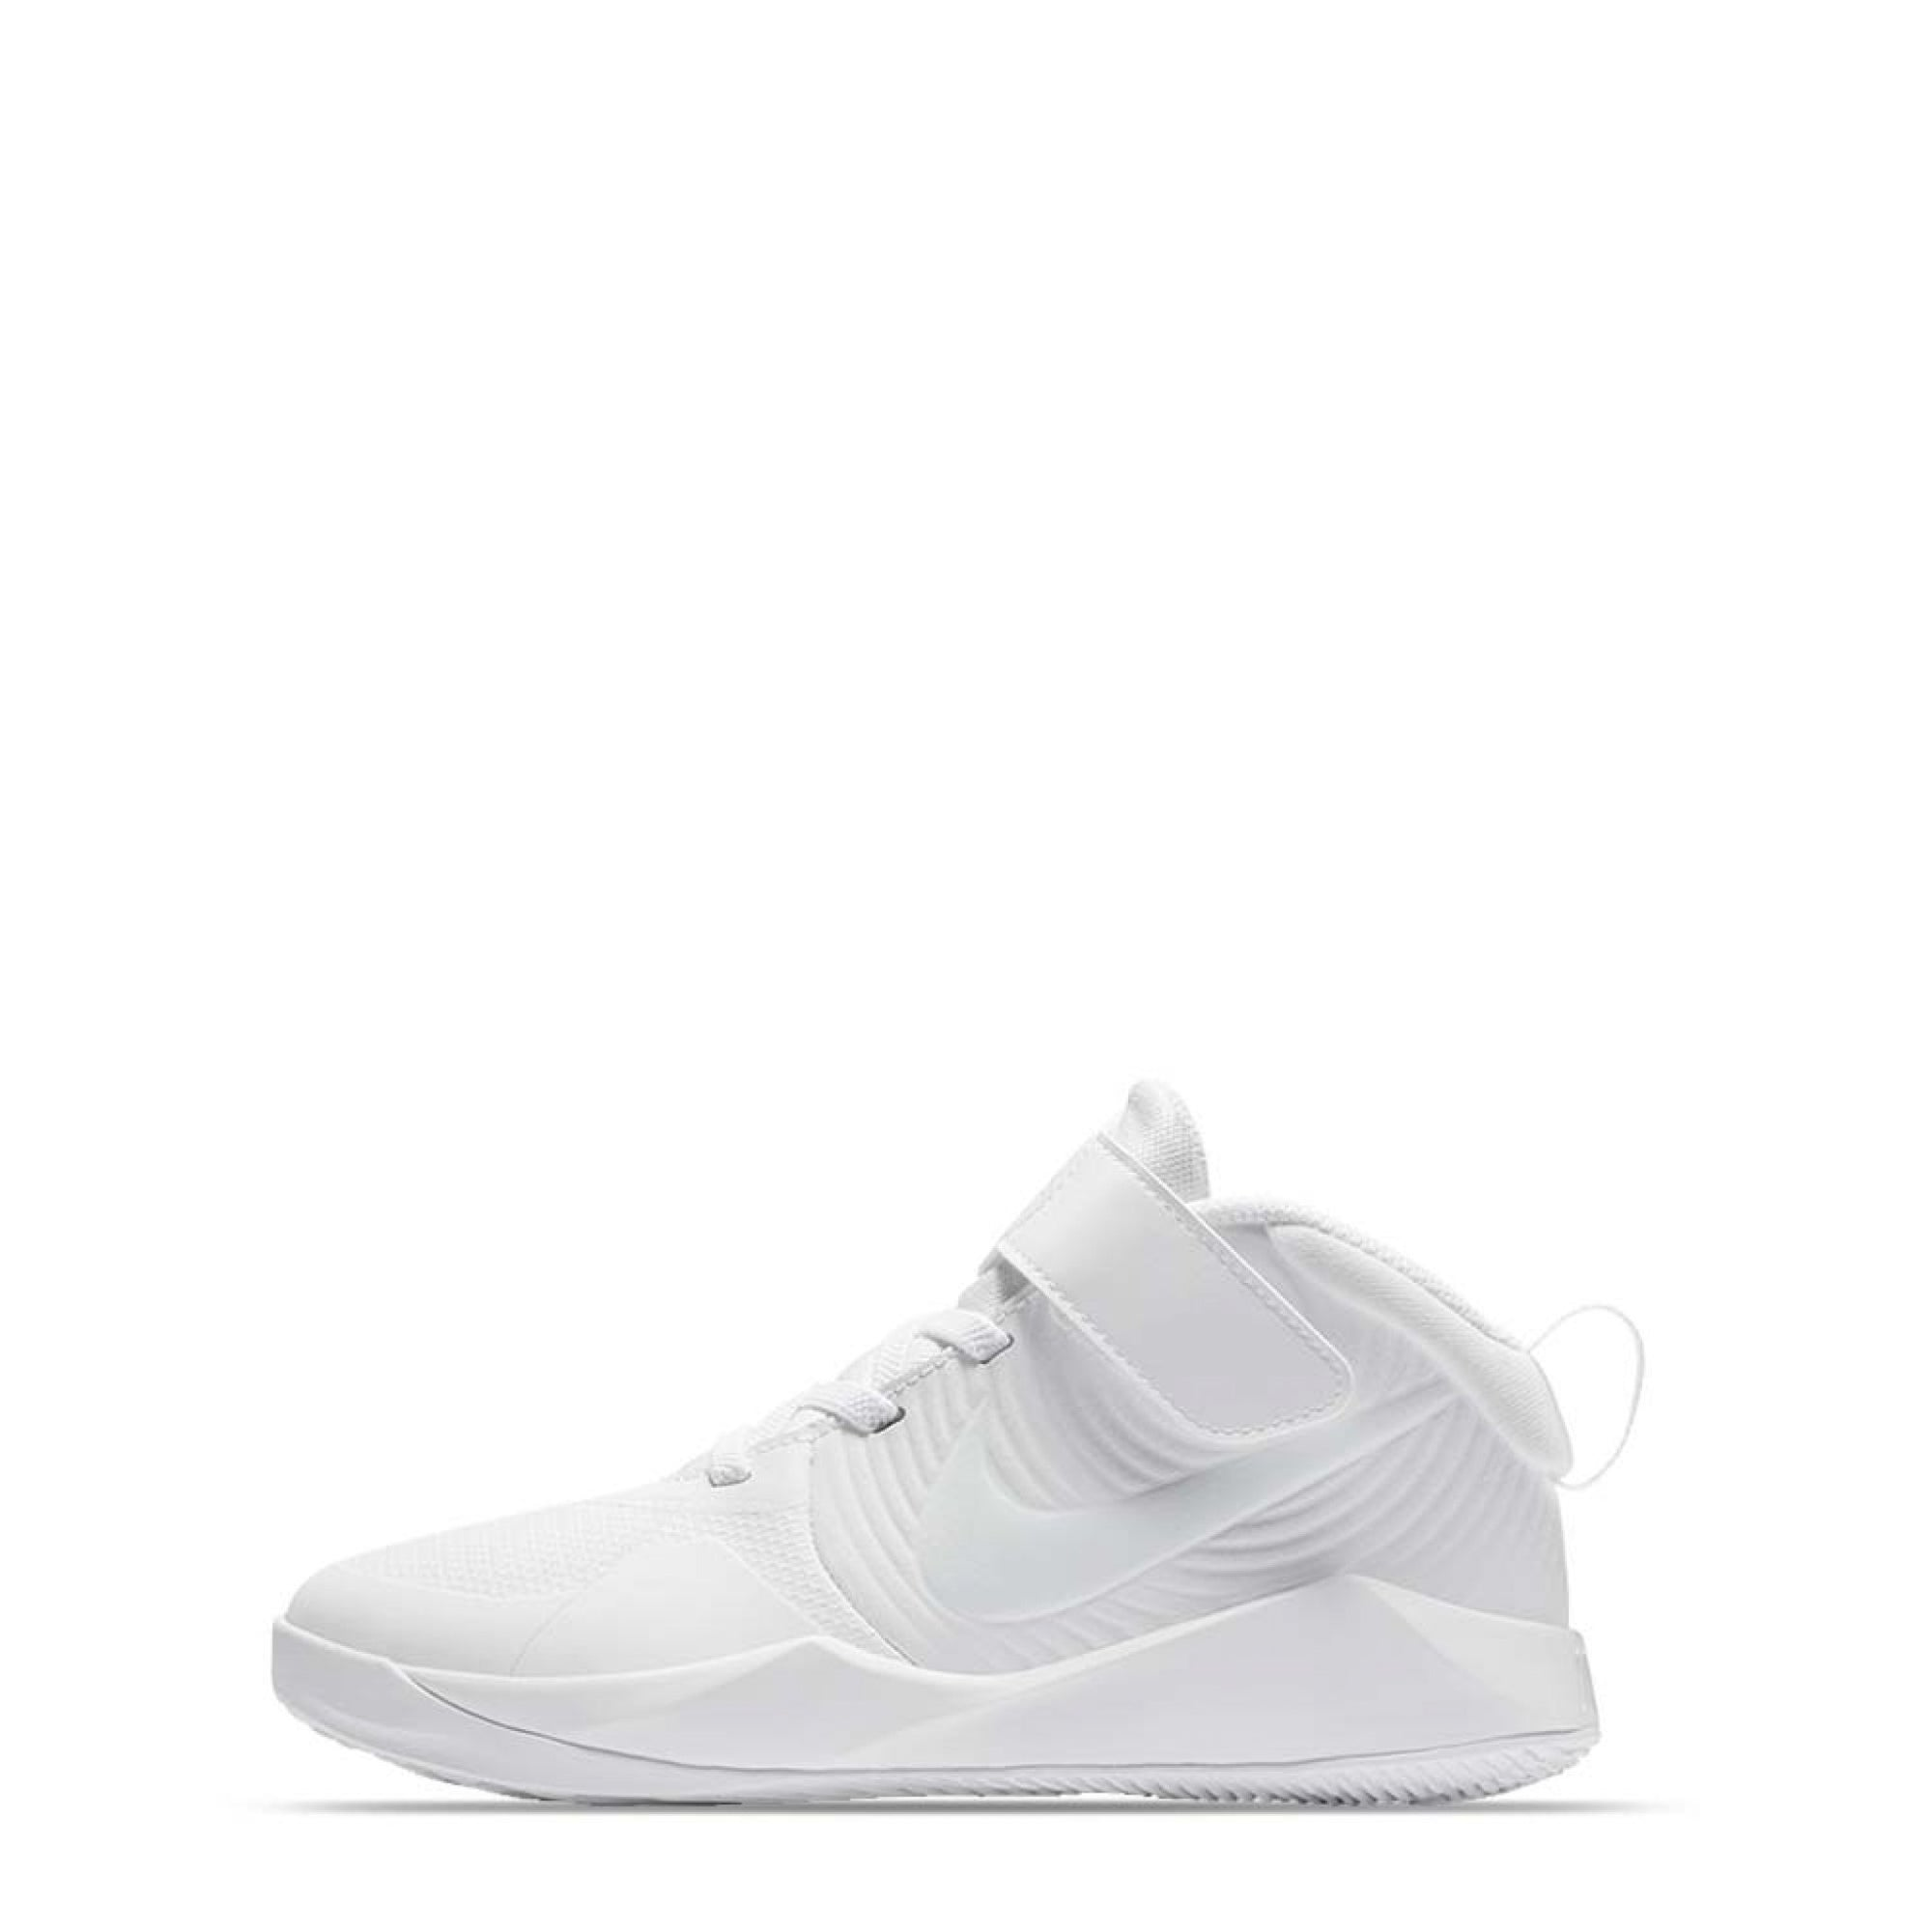 Nike Kids Team Hustle D 9 (Little Kids) - White/White-Platinum Tint-Volt SP-Footwear-Kids Nike